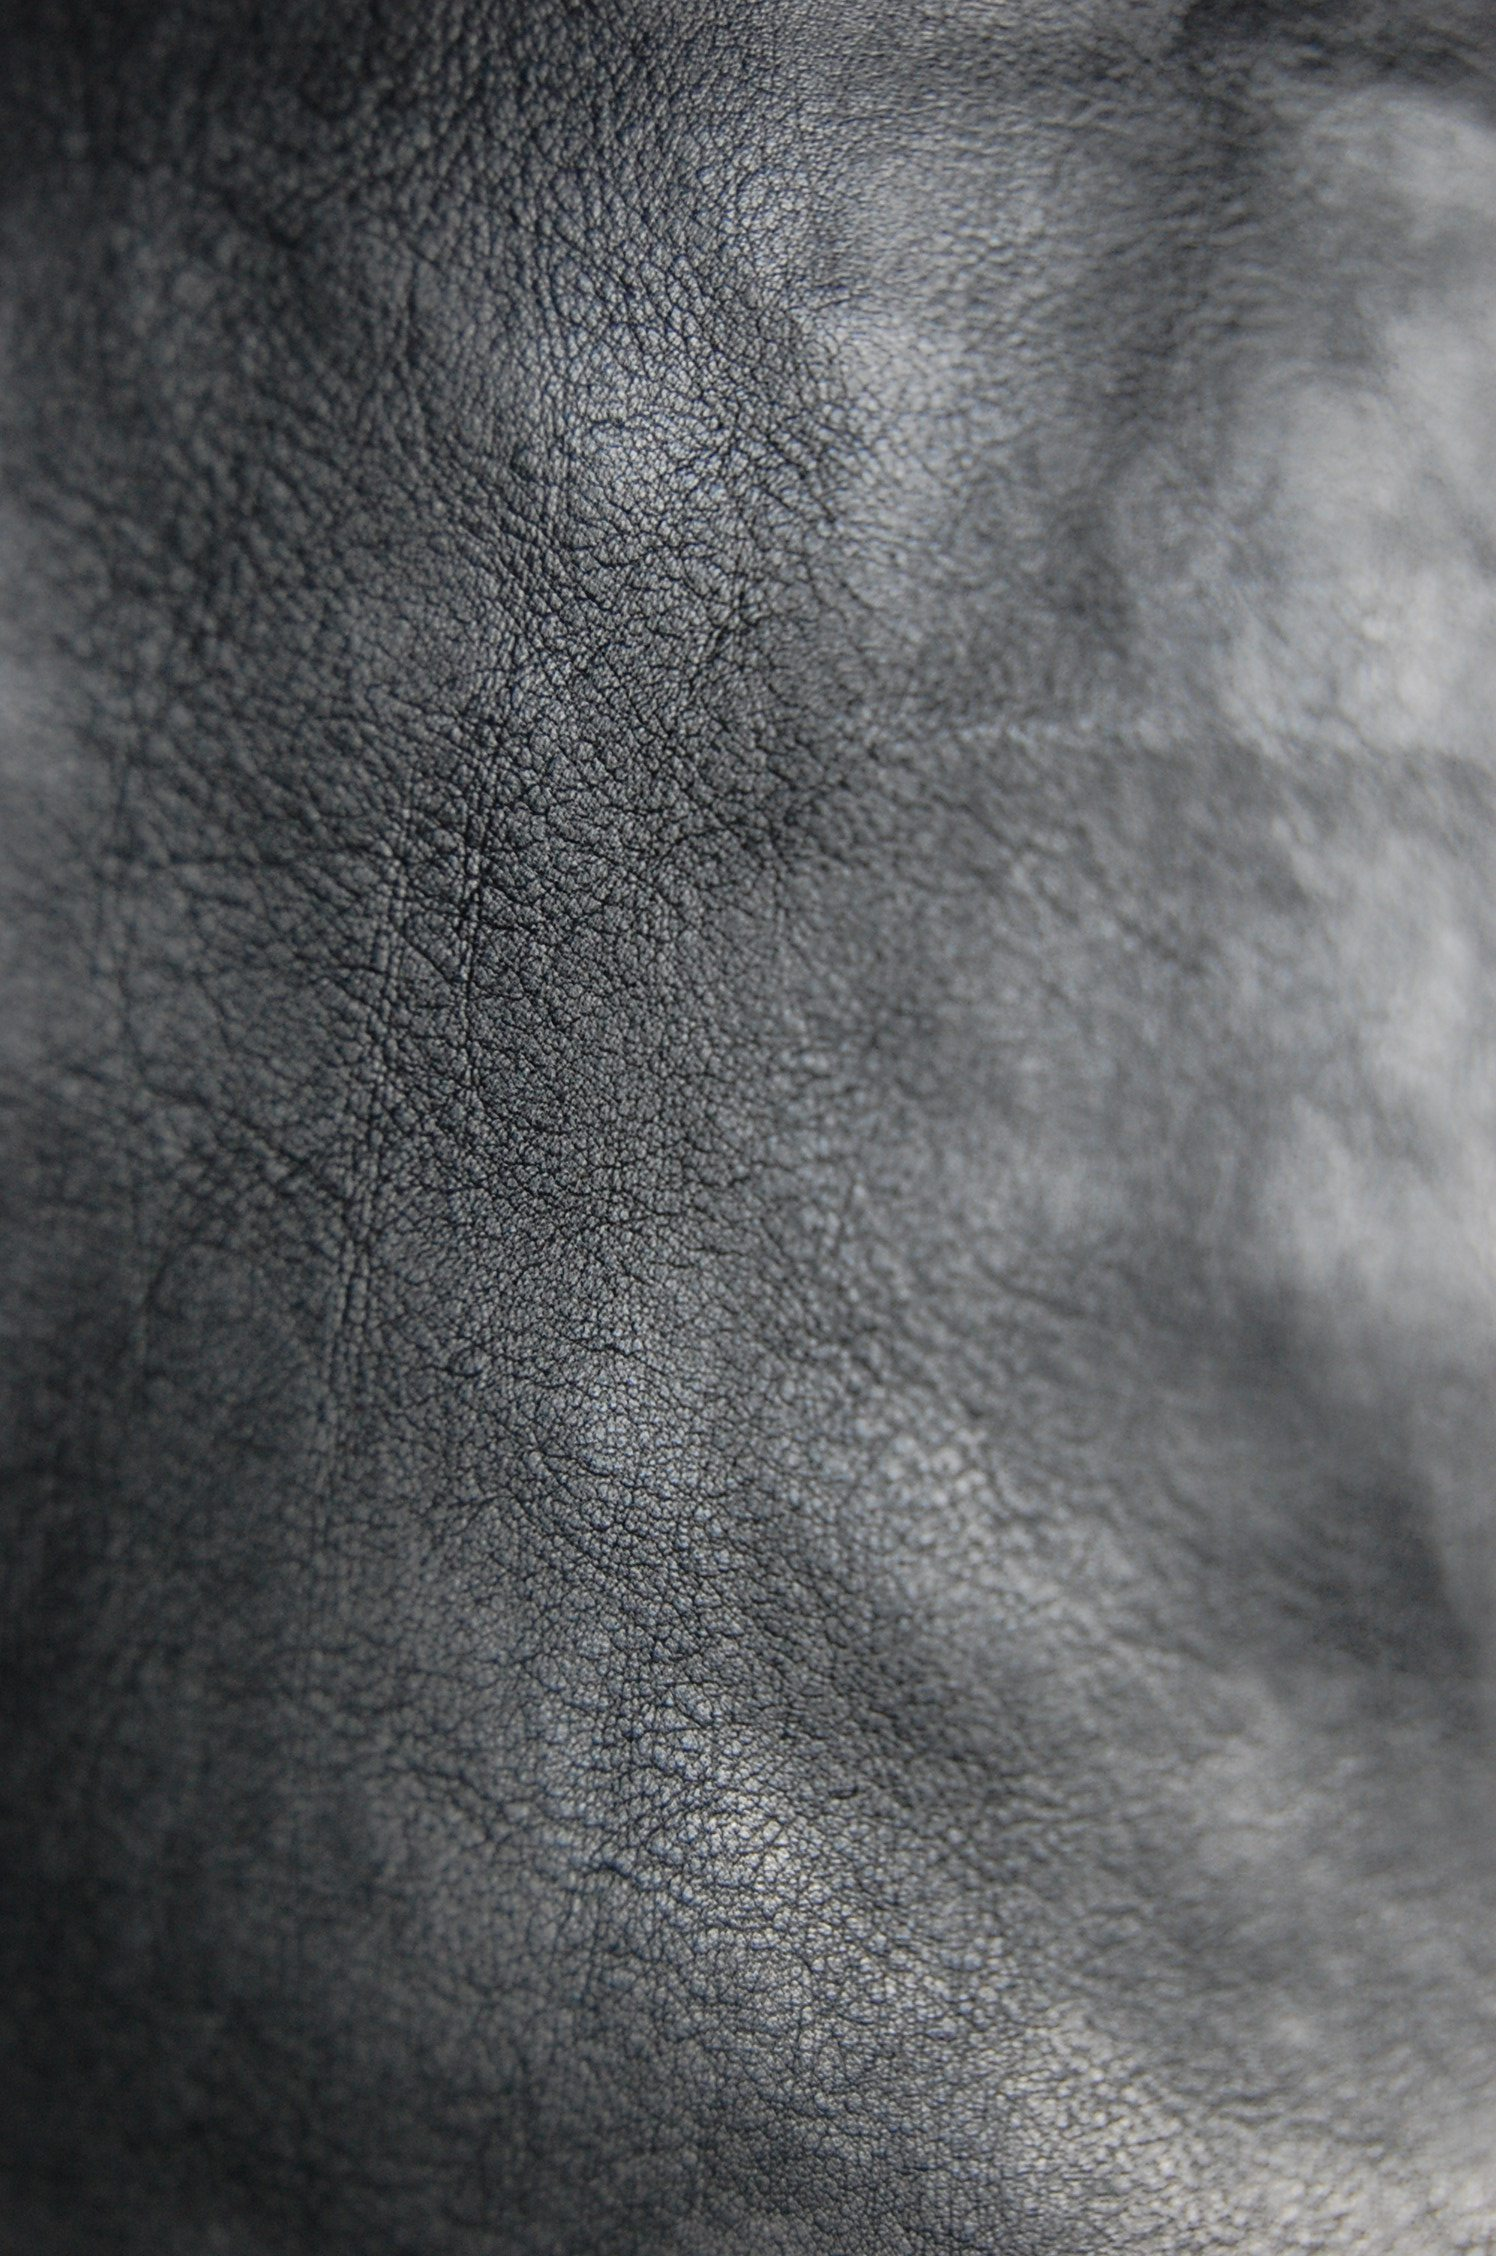 Leather: Texture Pack Dolphin Skin Texture